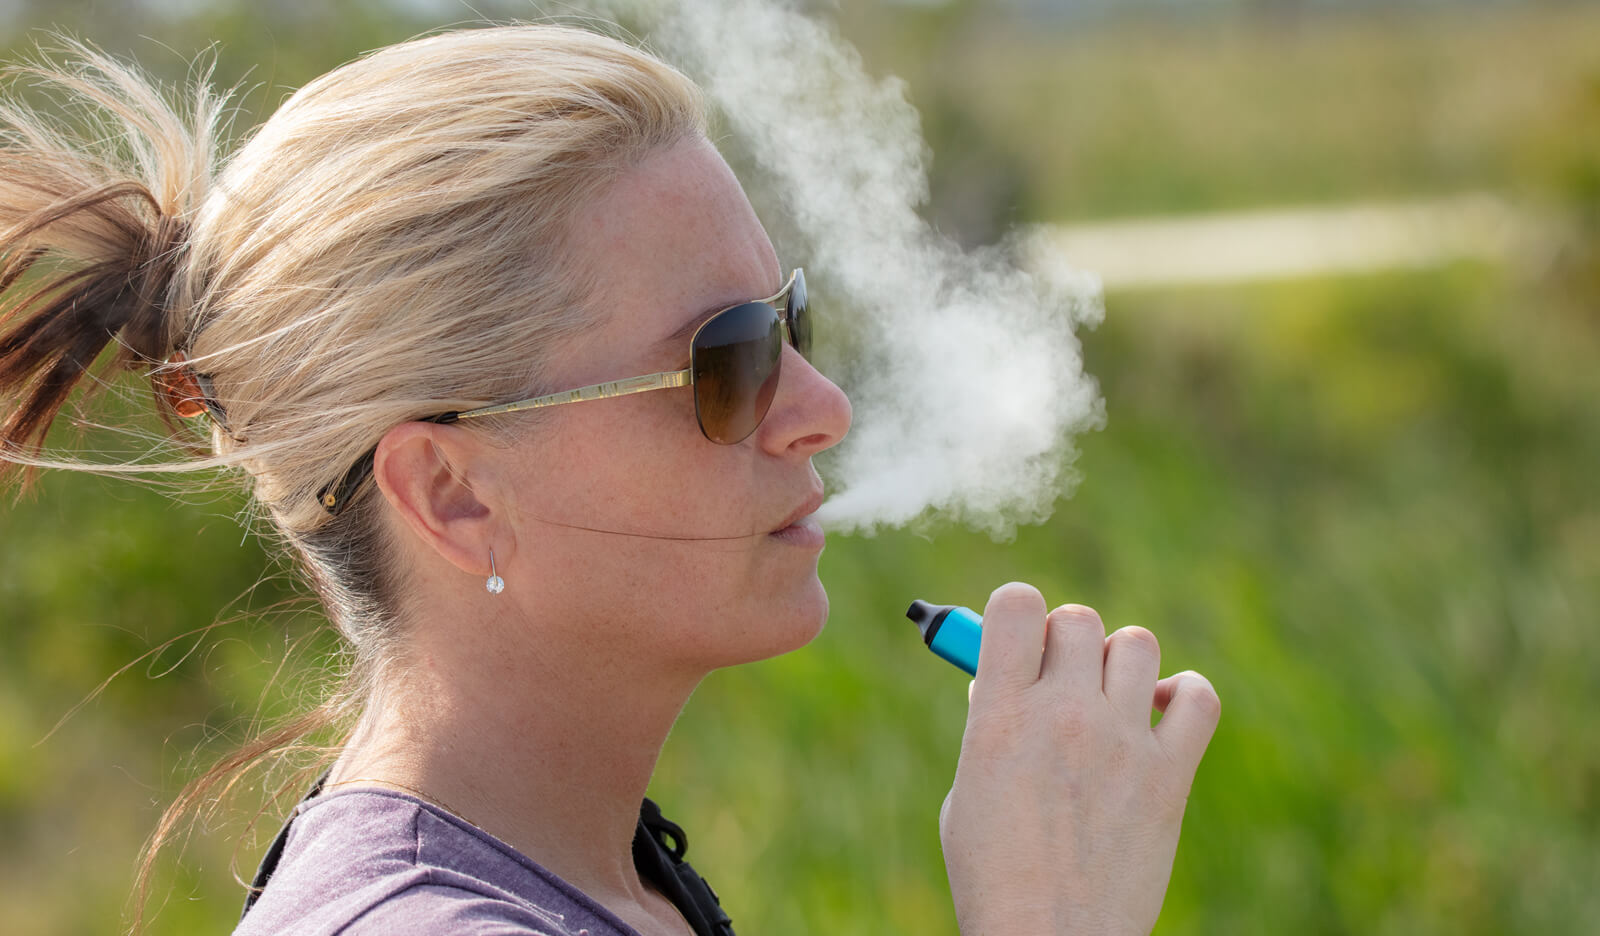 A woman vapes using an e-cigarette